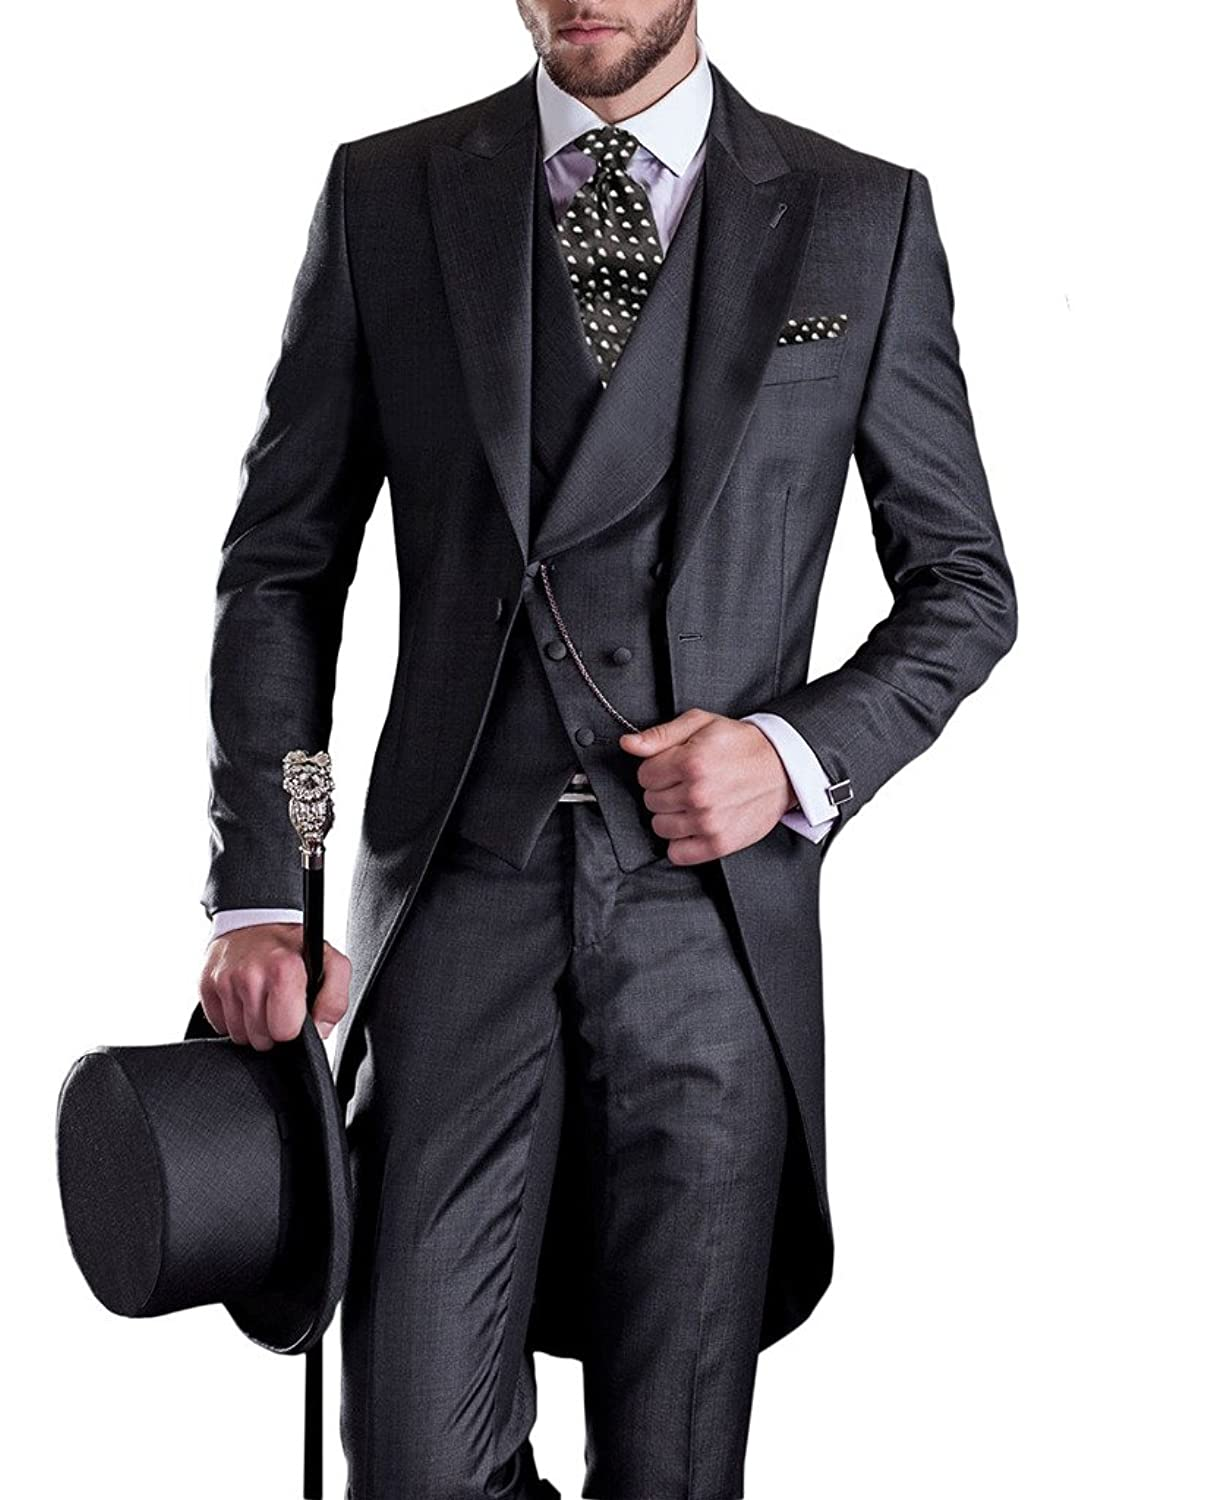 7 Easy 1920s Men's Costumes Ideas Mens Tail Tuxedo 3pc Tailcoat suit in Gray Suit Jacket Vest Suit Pants GEORGE BRIDE Premium $79.00 AT vintagedancer.com